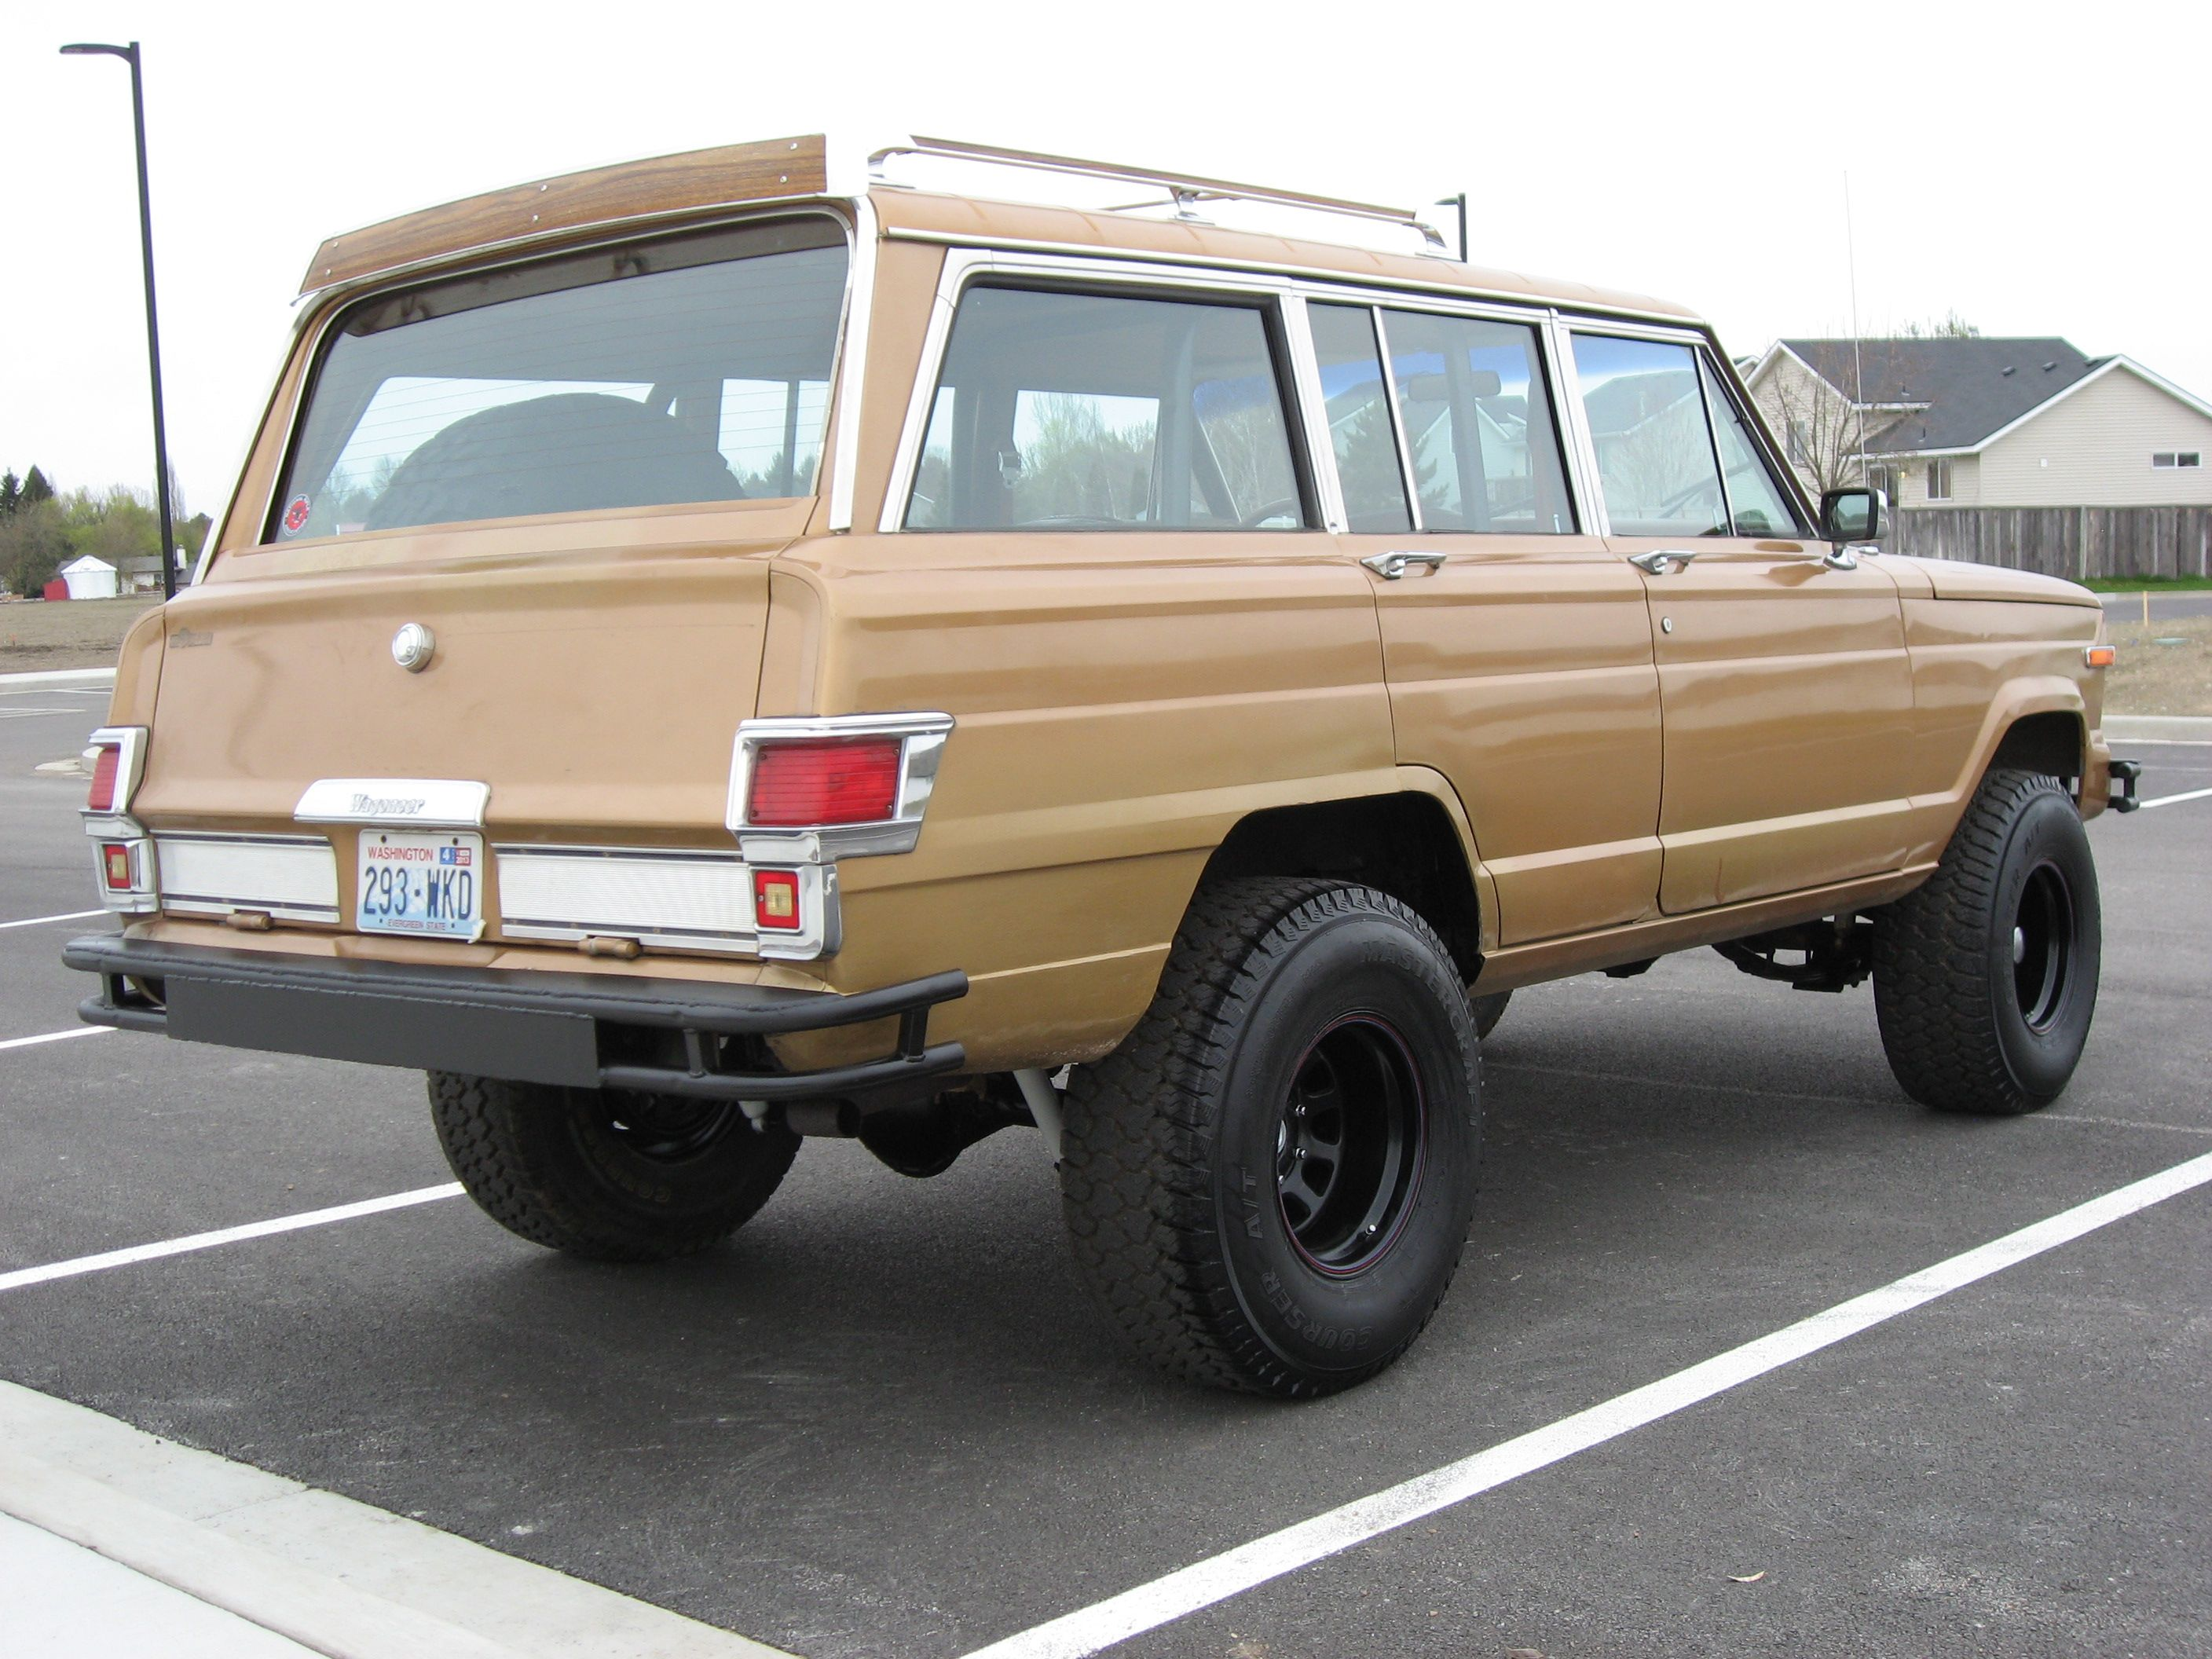 Jeep Wagoneer Lift Kit | The Wagon